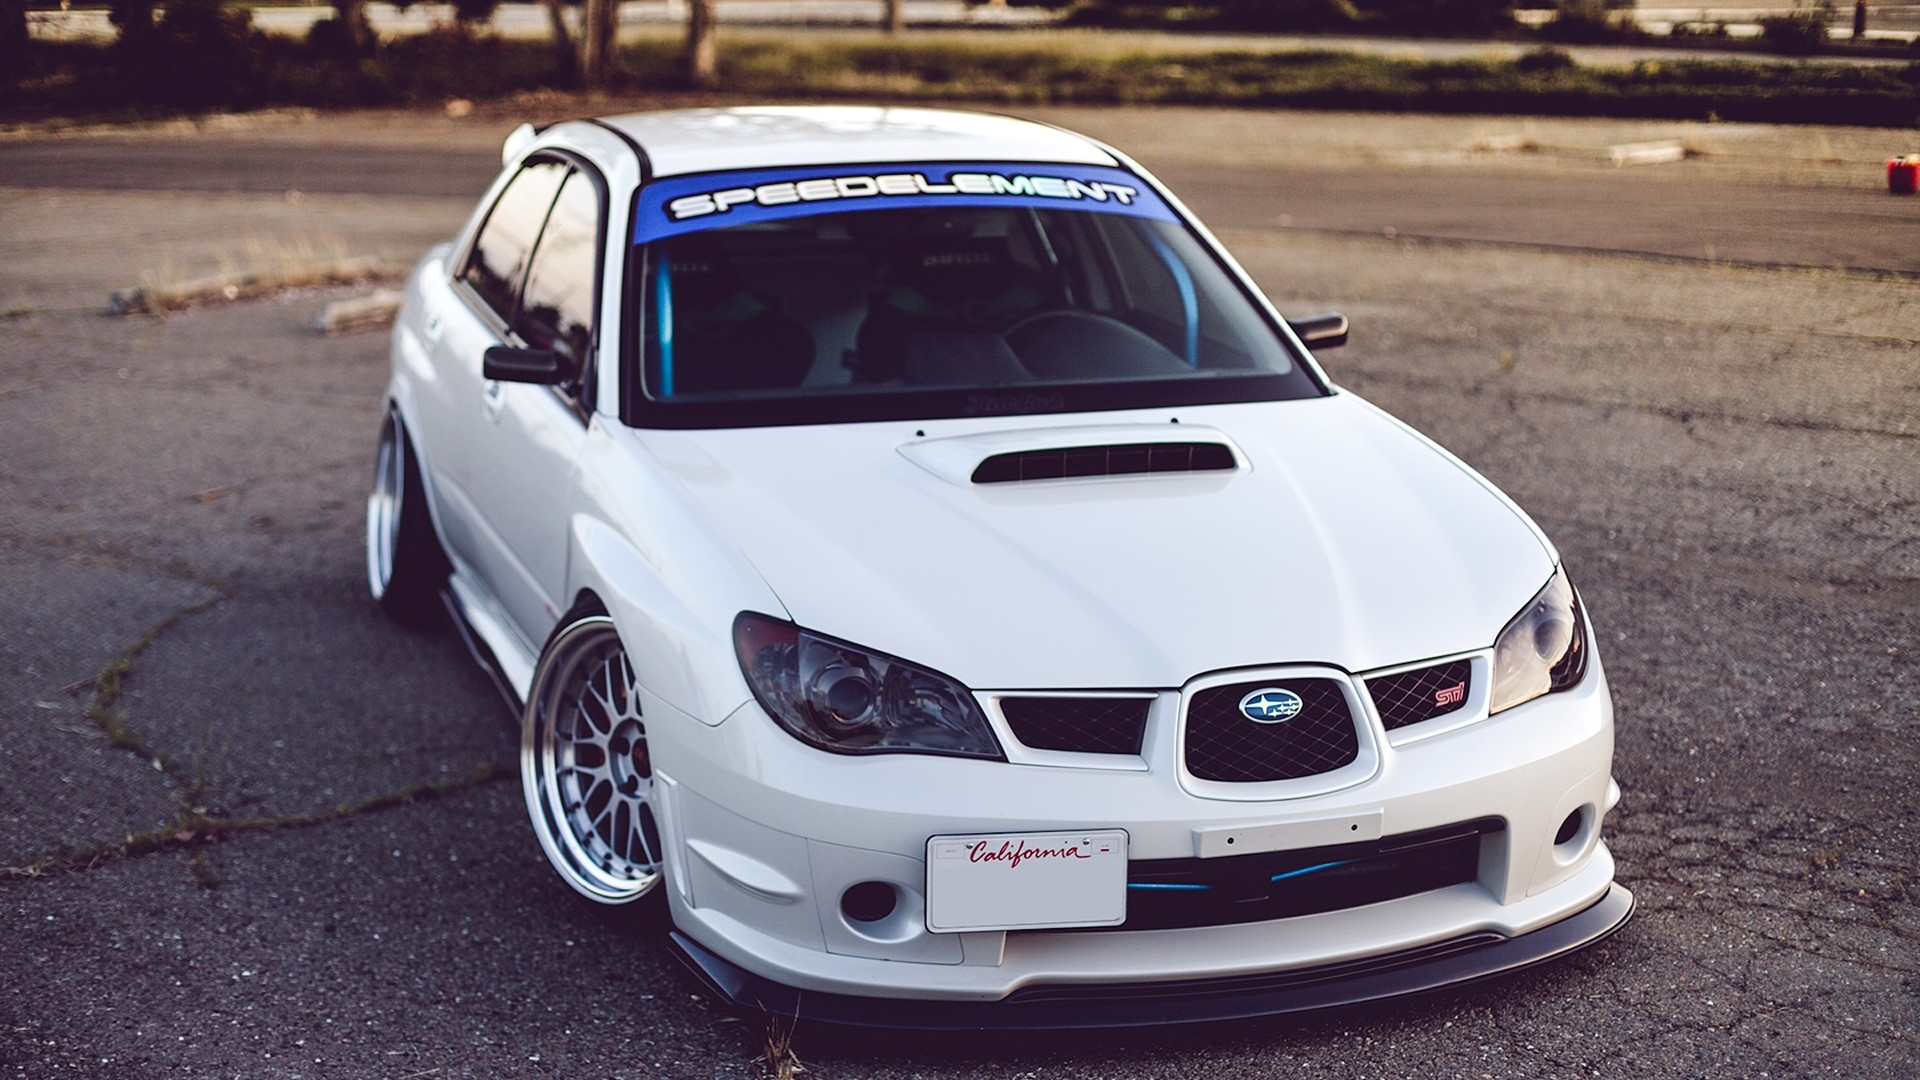 download wallpaper 1920x1080 subaru impreza wrx sti white auto full hd 1080p hd background. Black Bedroom Furniture Sets. Home Design Ideas